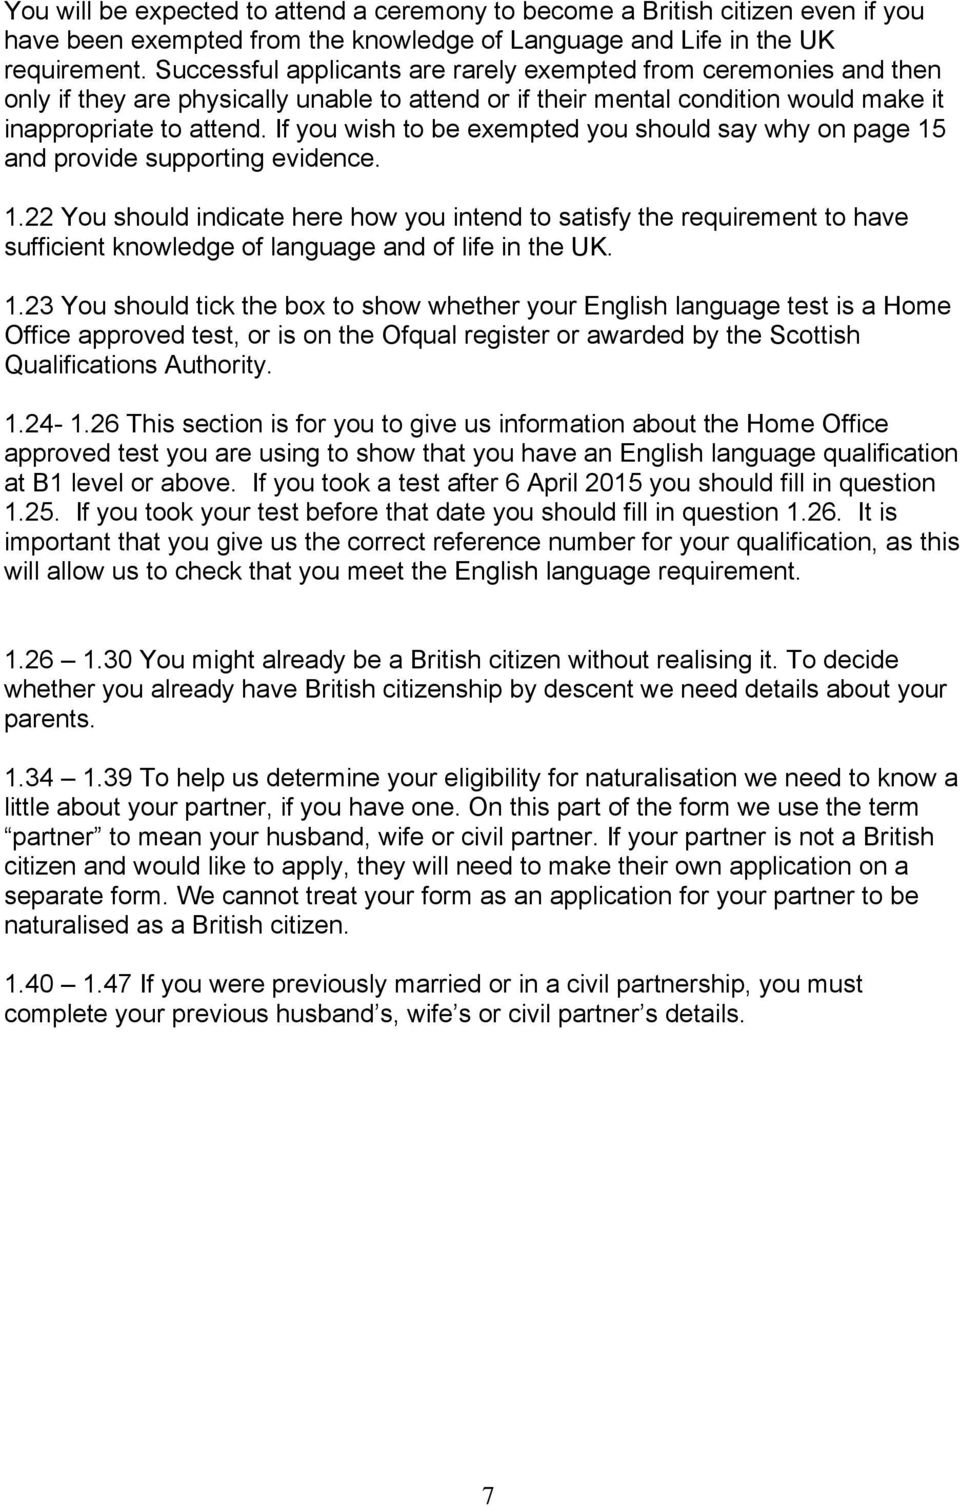 If you wish to be exempted you should say why on page 15 and provide supporting evidence. 1.22 You should indicate here how you intend to satisfy the requirement to have sufficient knowledge of language and of life in the UK.